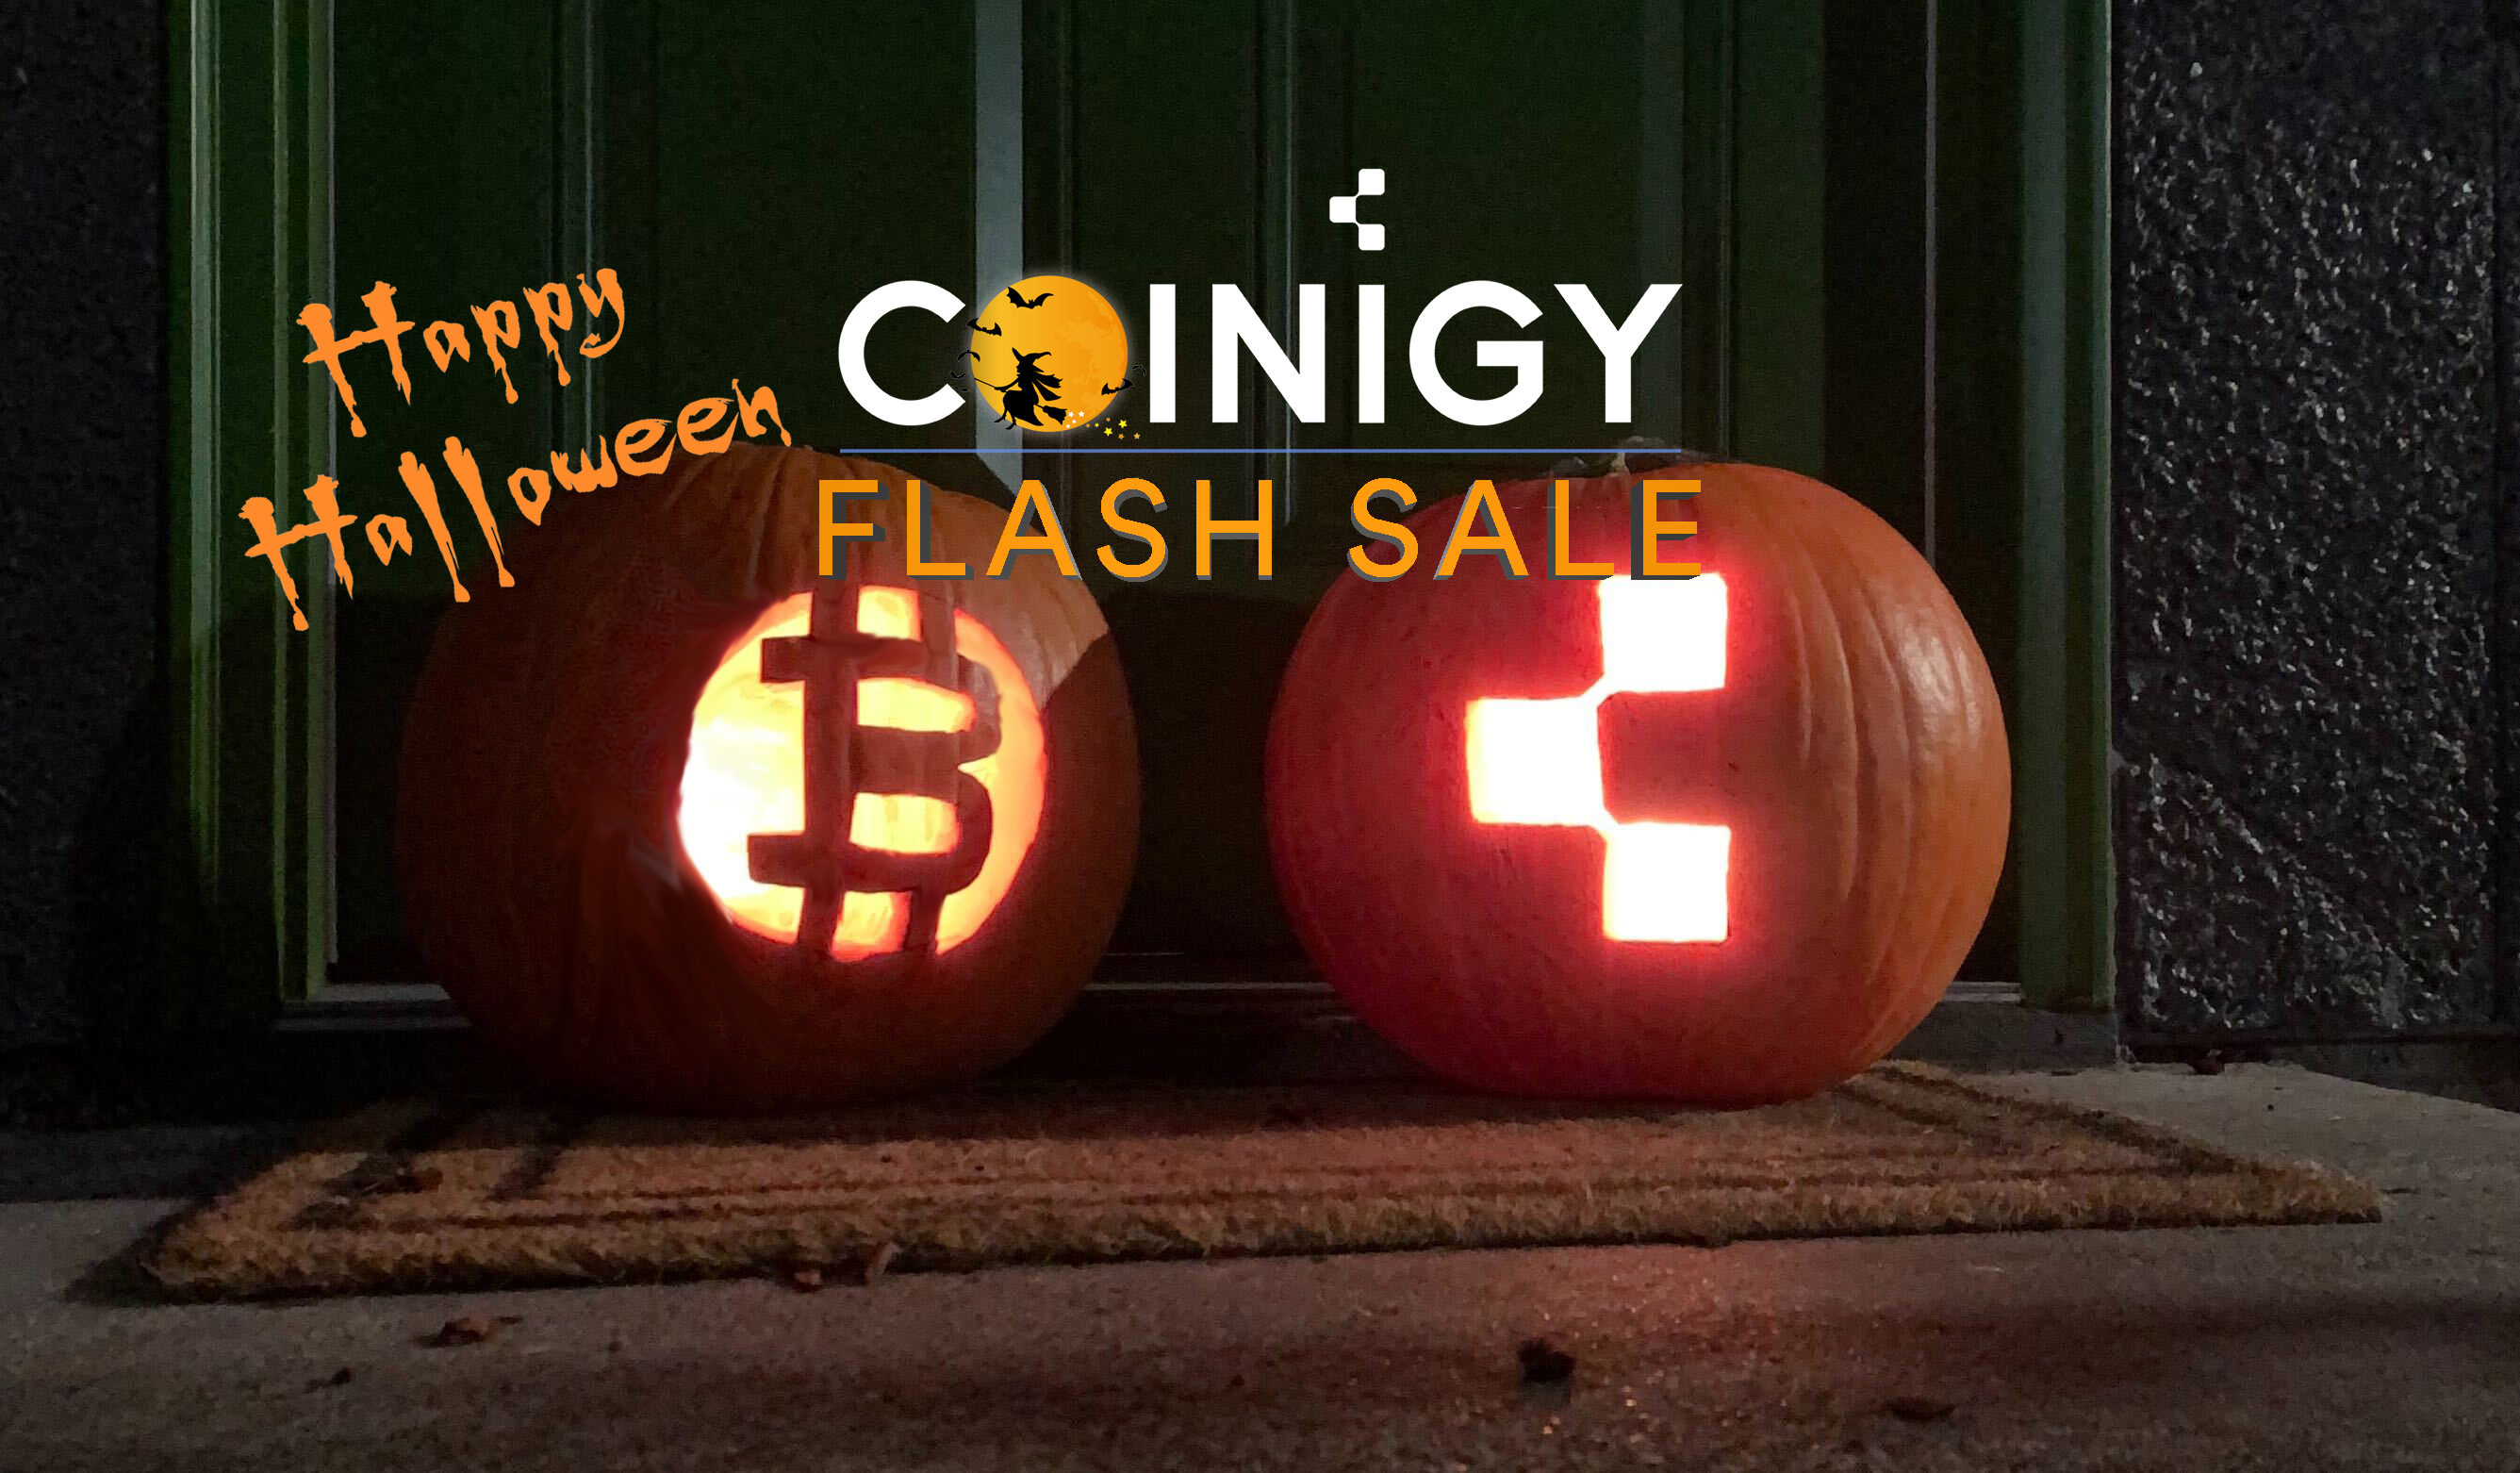 Coinigy Flash Sale! 25% off 🎃👻 Limited Number Available!